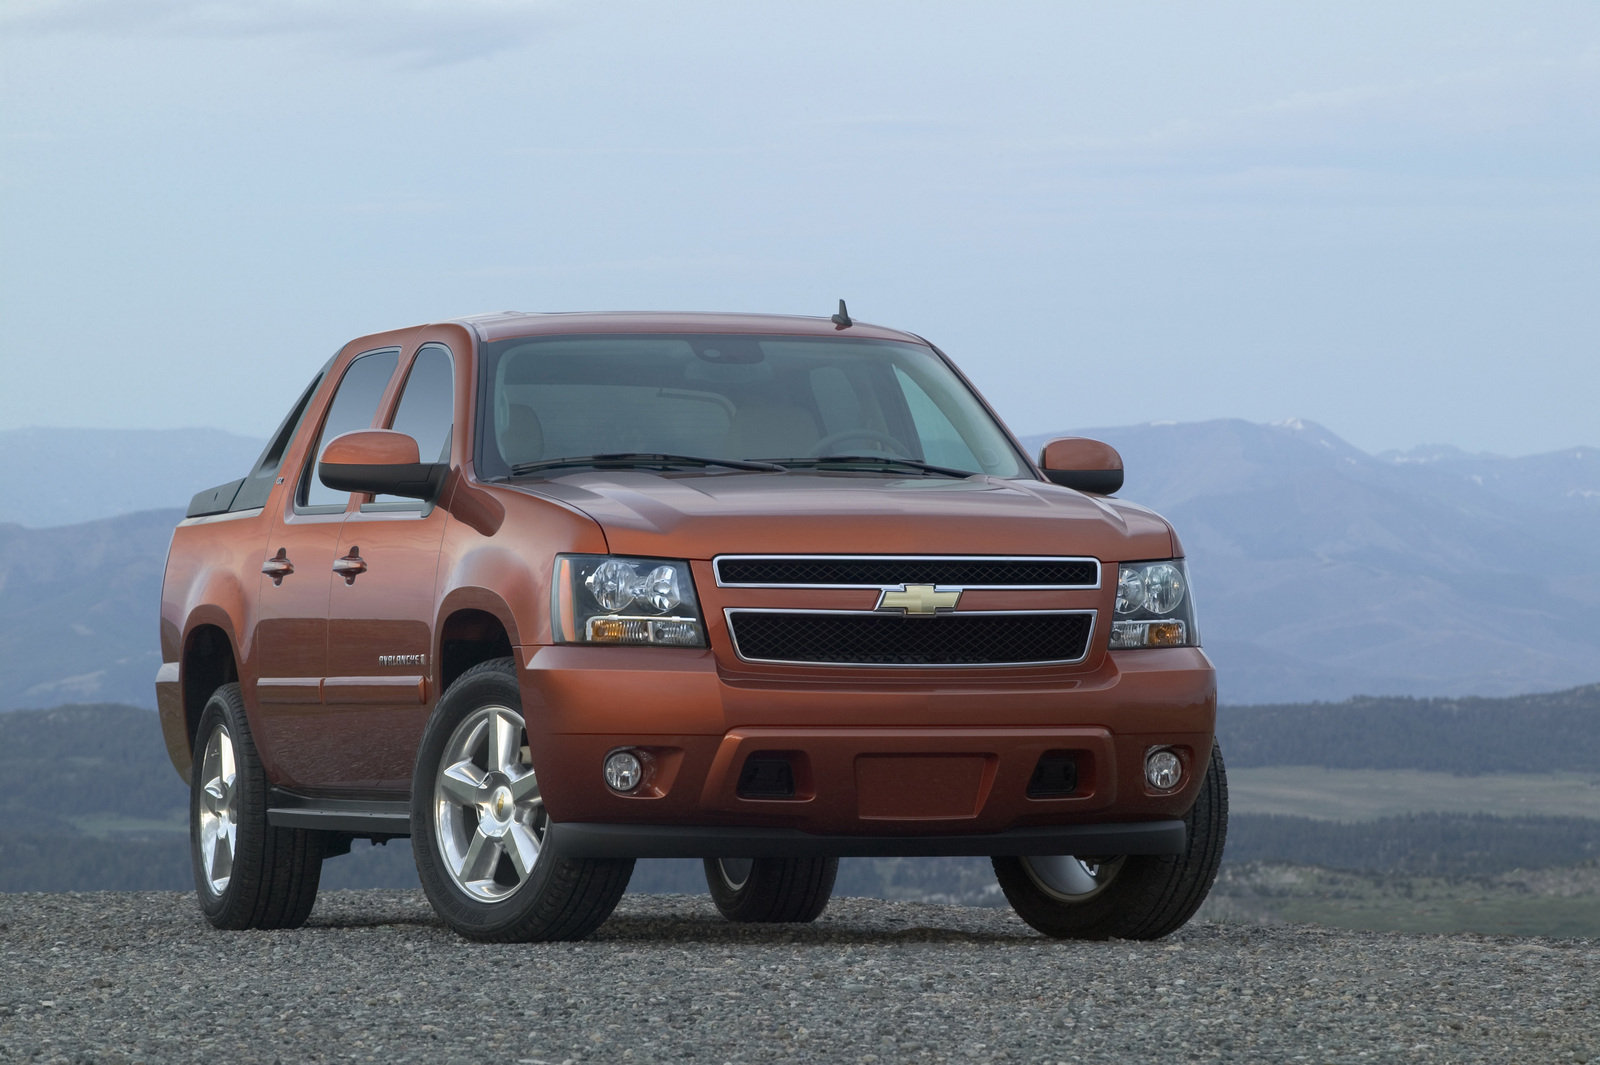 2007 Chevrolet Avalanche | Top Speed